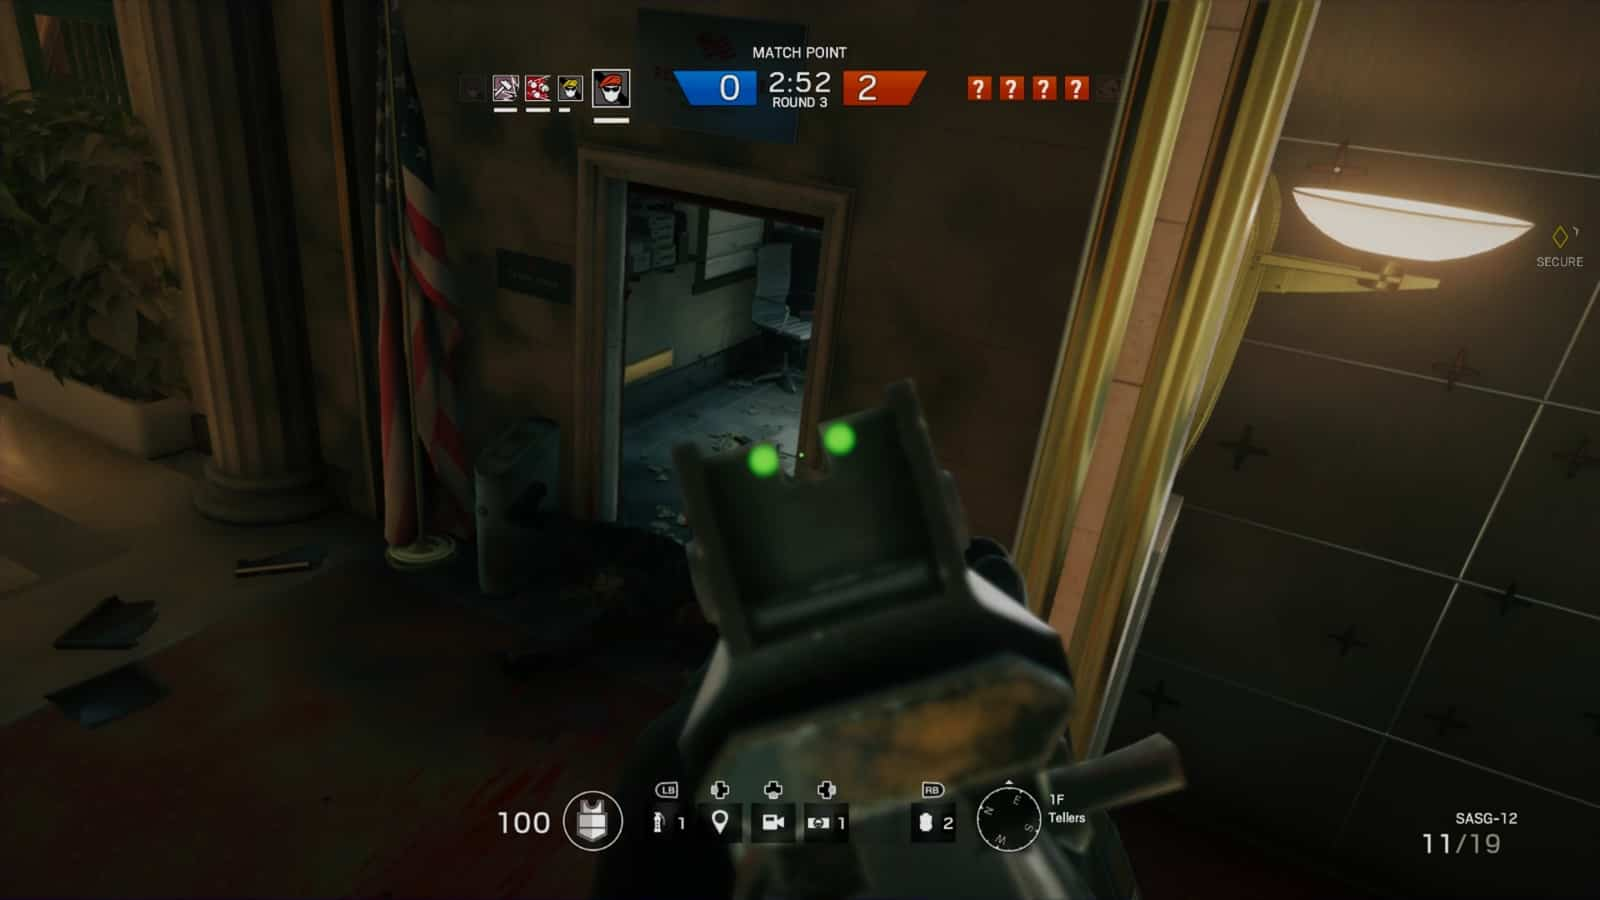 How to Get Better at R6s